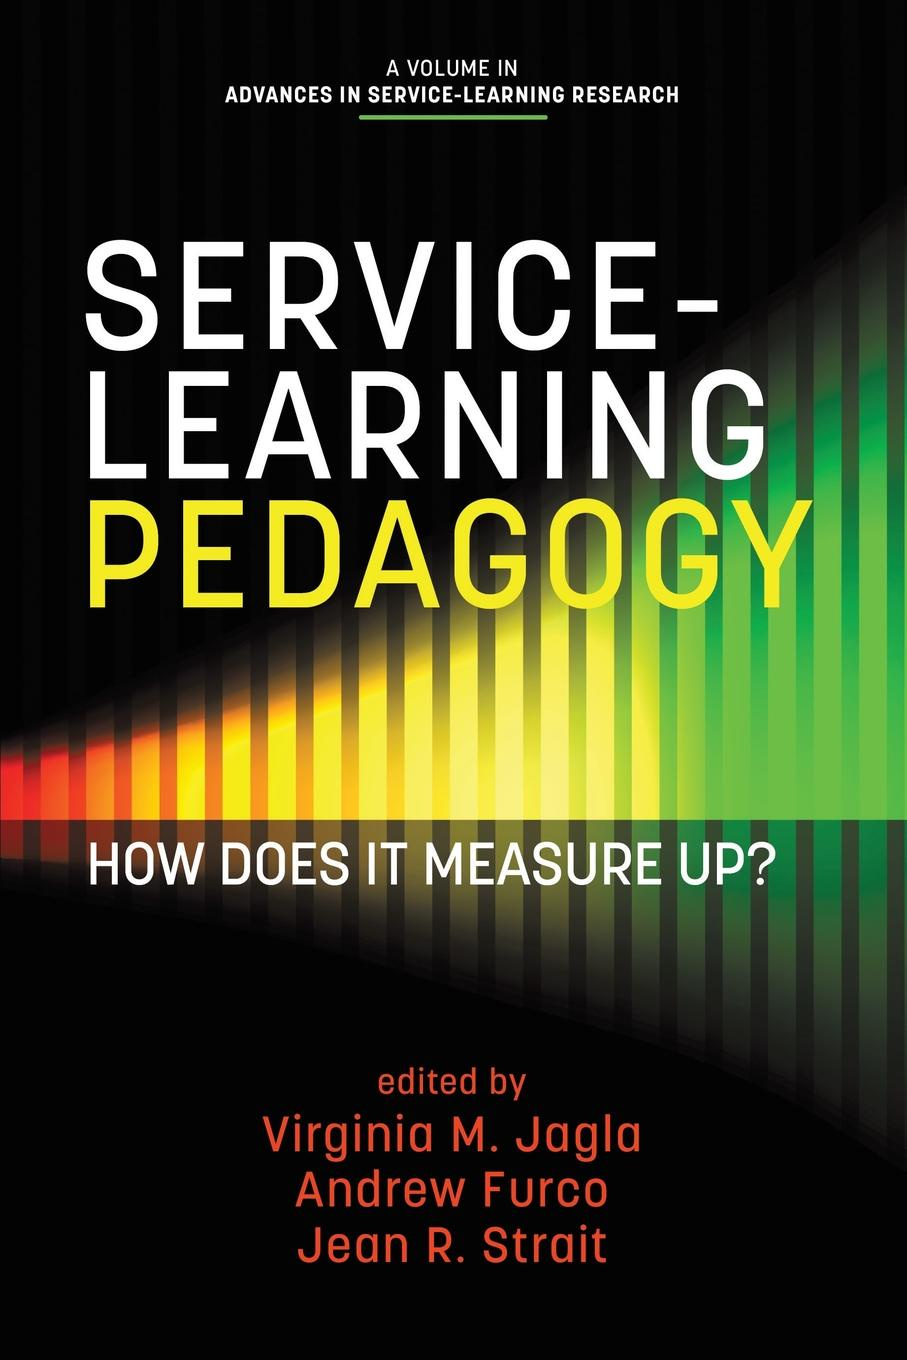 купить Service-Learning Pedagogy. How Does It Measure Up. онлайн